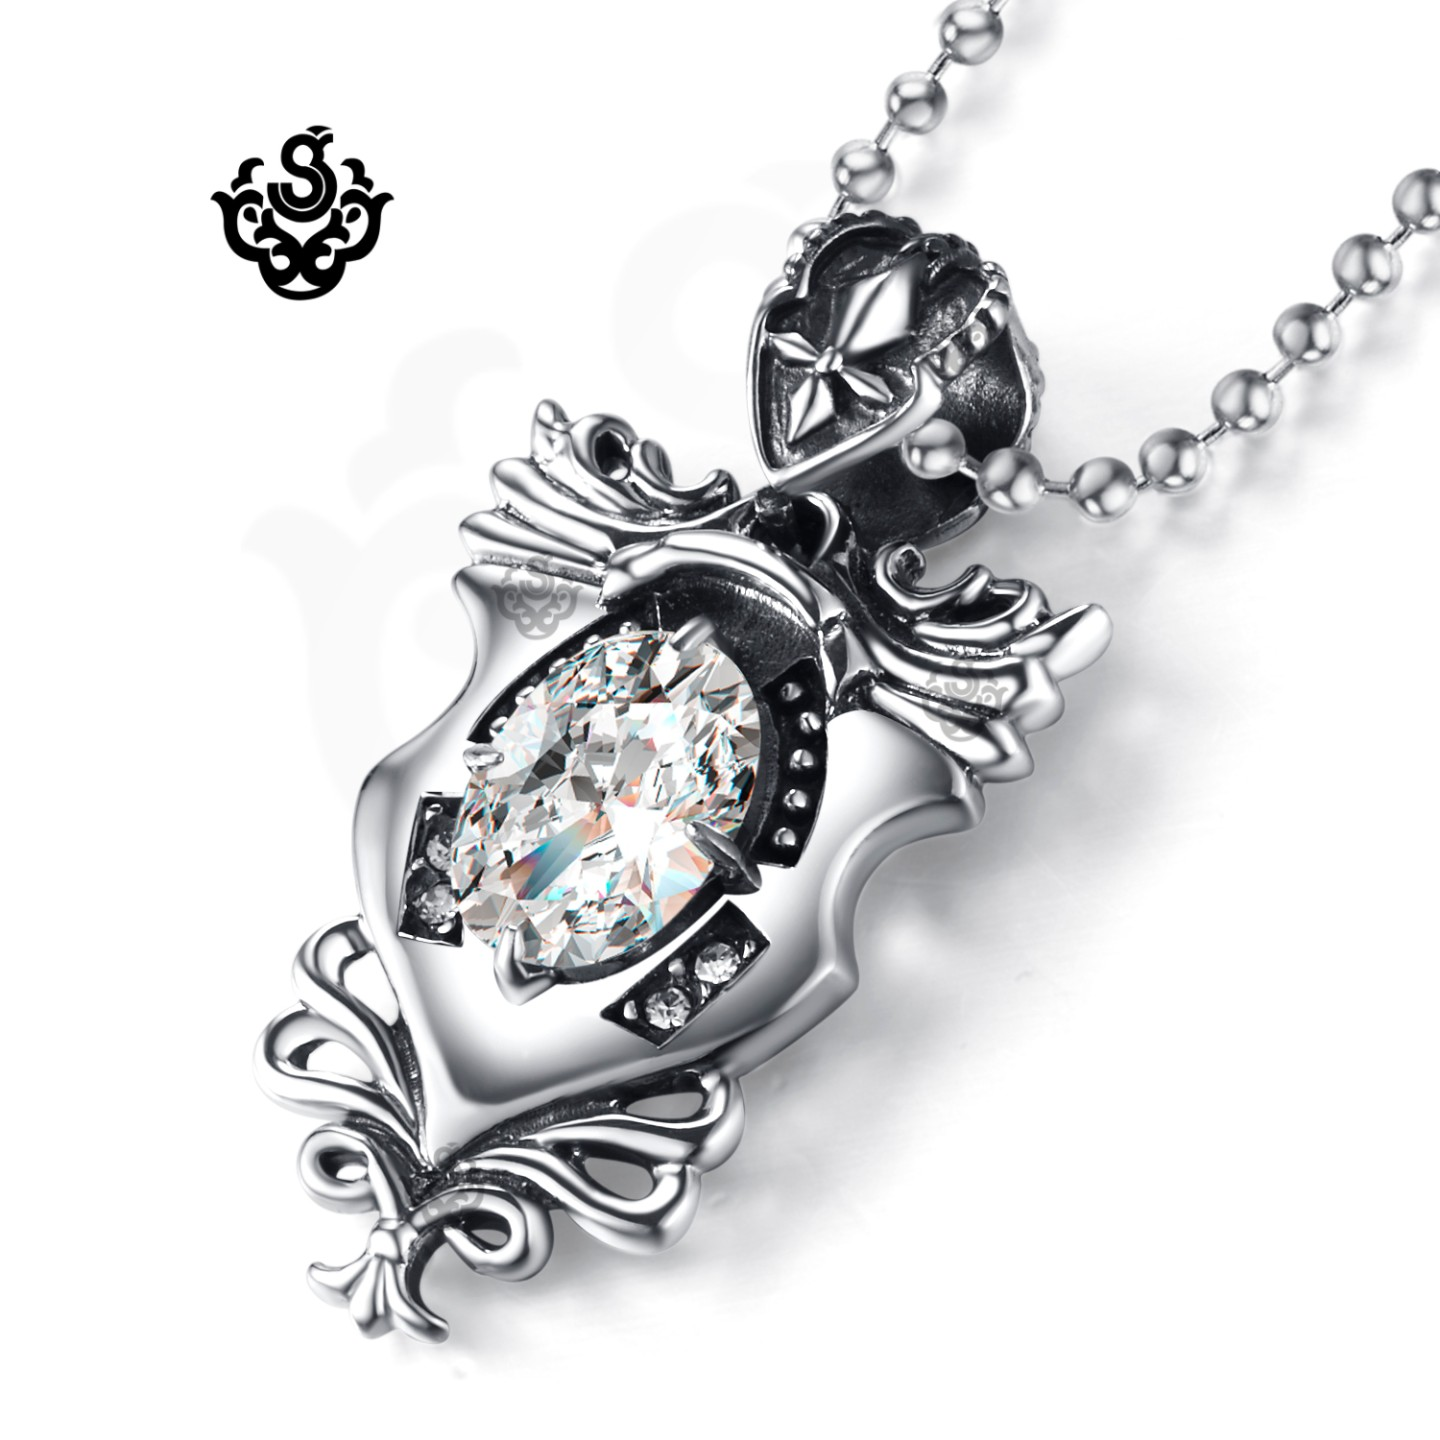 diamond dancing silver jewelry heart niomi limited women main p simulated peacock en stone hktv fashion star international sterling s necklace jewellery